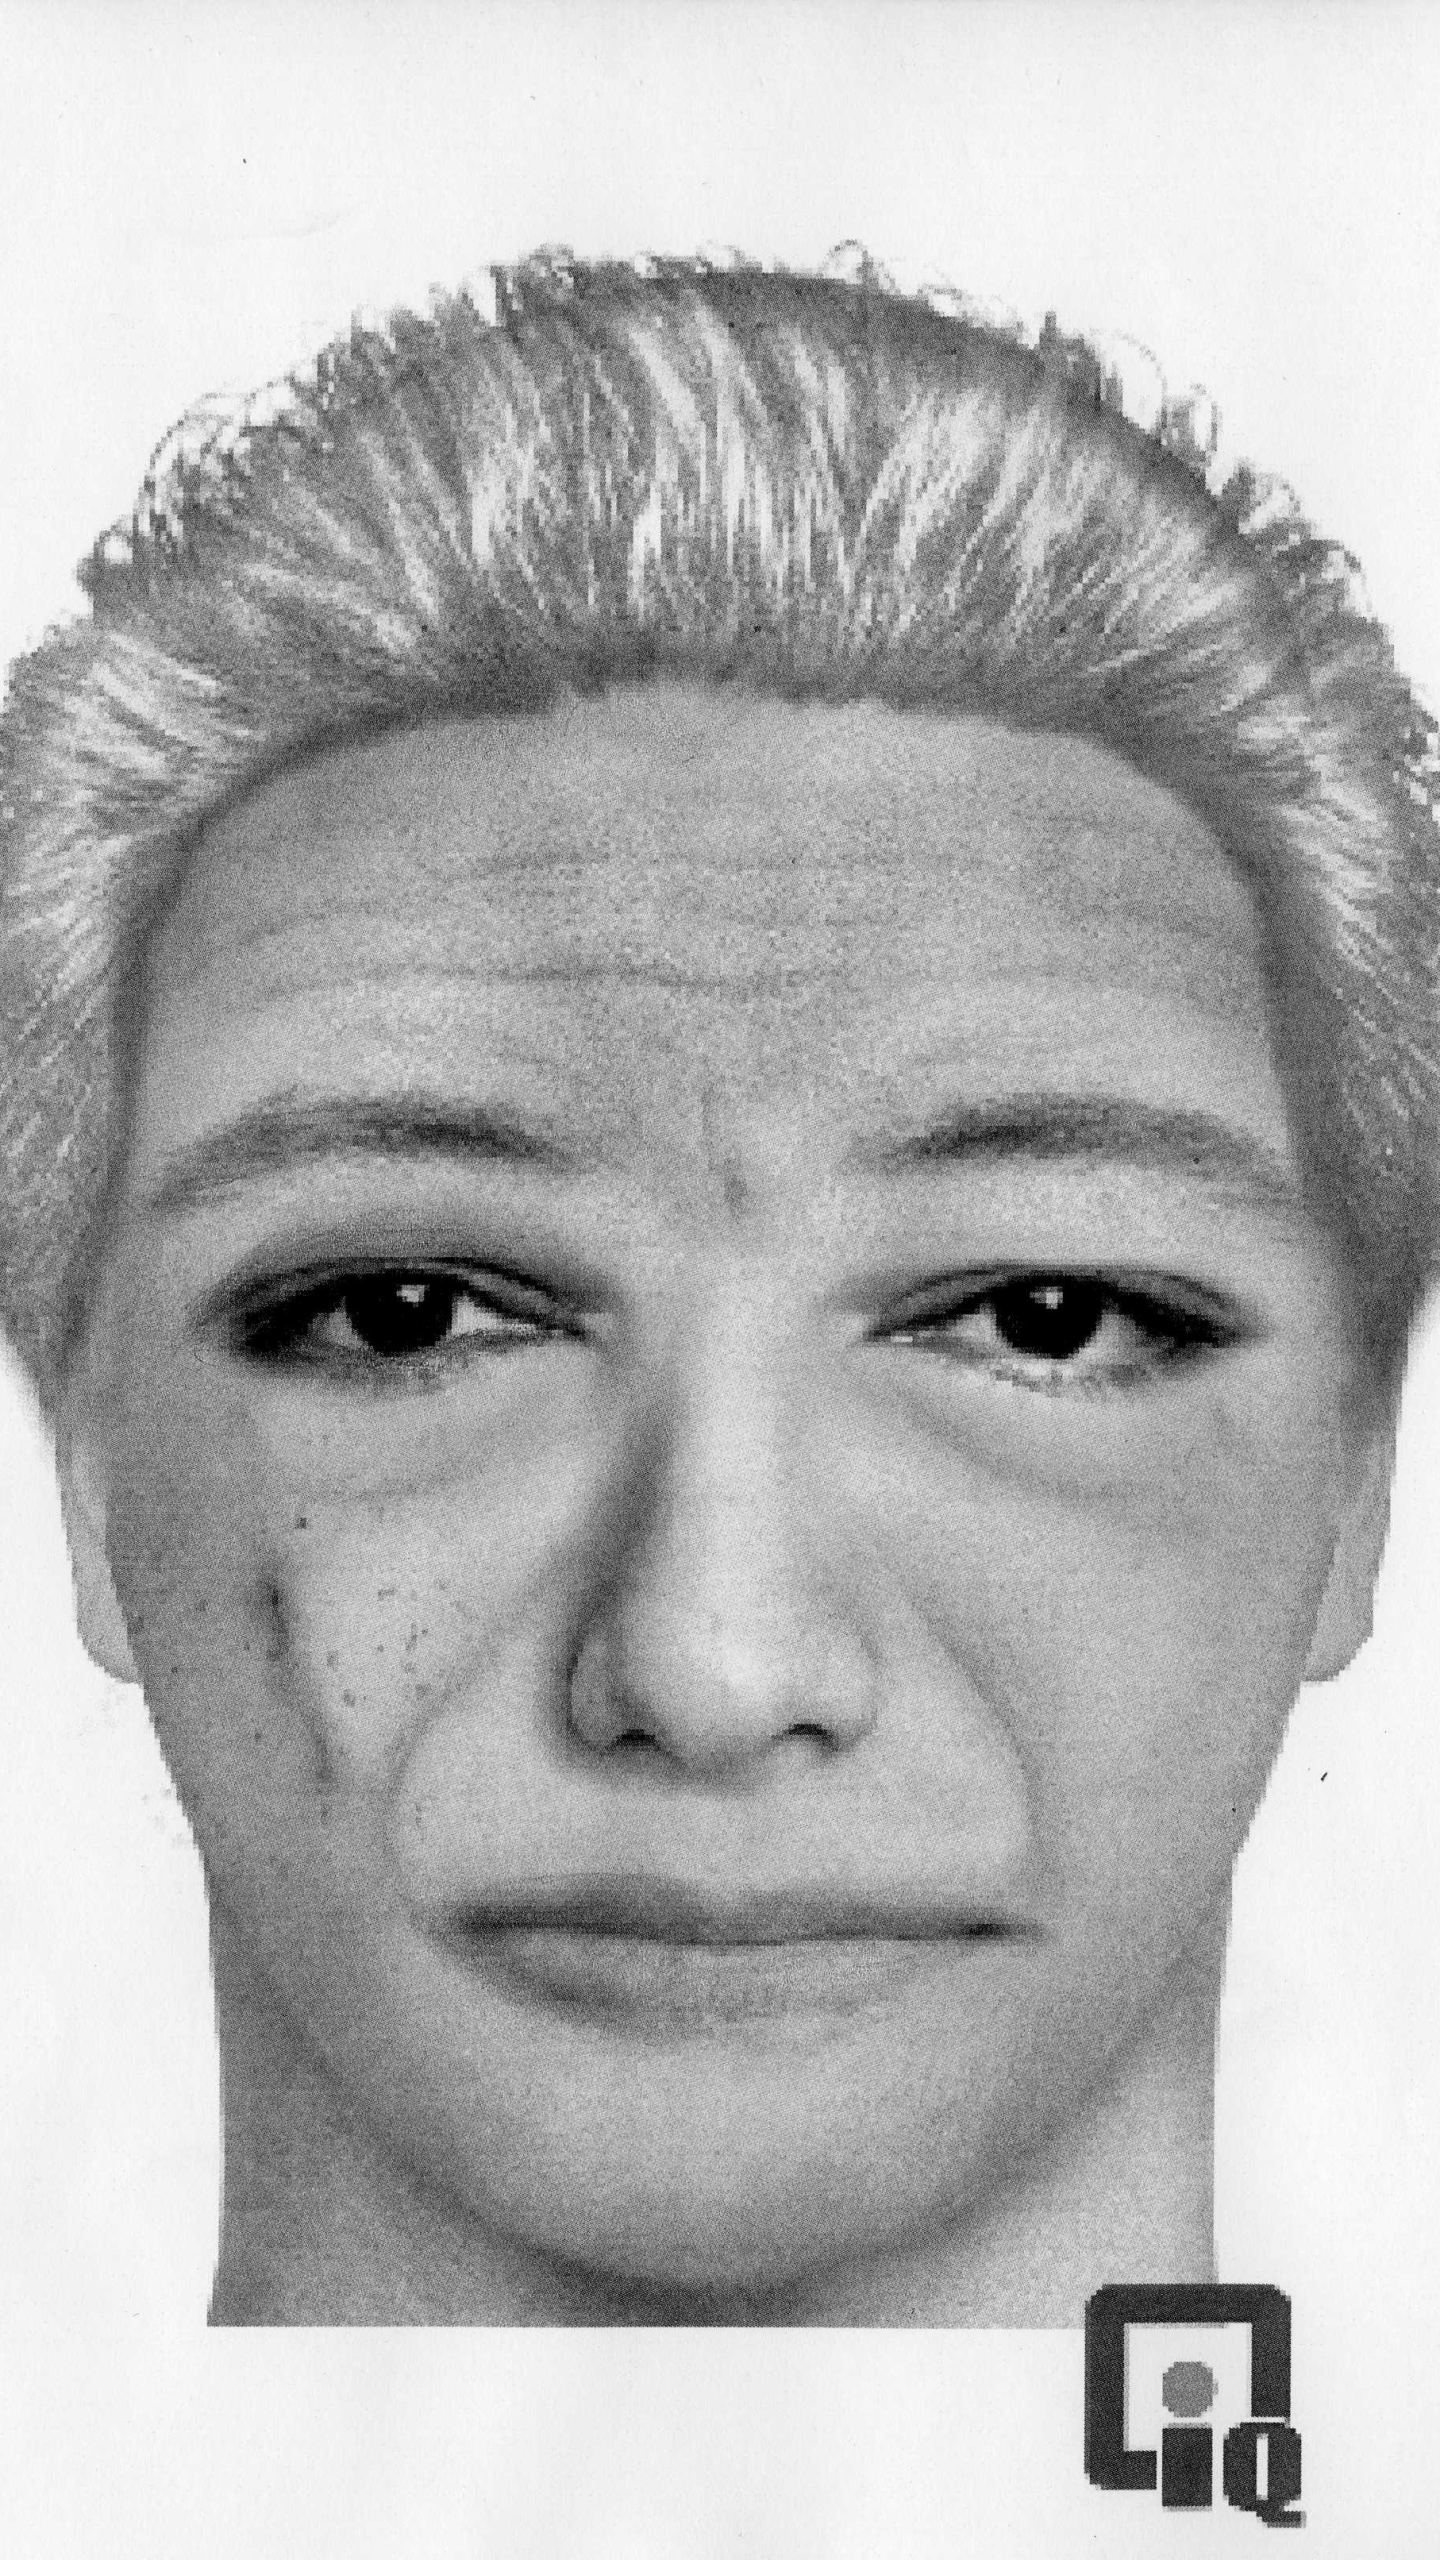 A police sketch of a suspect wanted in connection with three sex assault in Lakewood. (Photo: Lakewood Police Department)